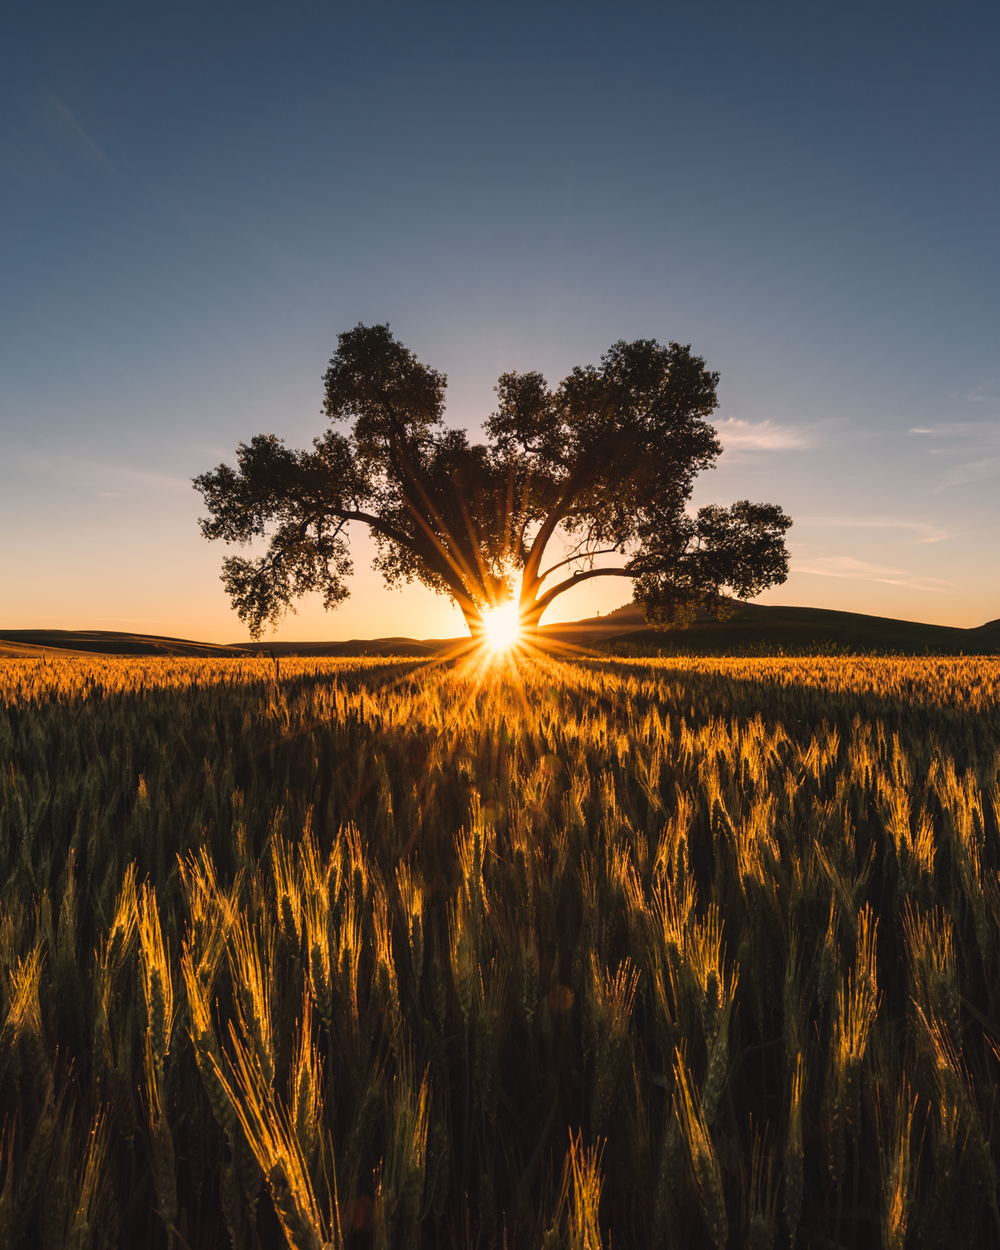 Palouse Workshop - May 25th-28th 2018 $1,599.003 Nights and 4 DaysExplore the rolling hills of the PalouseLodging in Pullman, Washington and transportation from Portland included!3 Sunsets 3 Sunrises lots of exploring in between!We will also explore some waterfalls of the Columbia River Gorge before we depart for the Palouse!Take your photography to the next level with seasoned photographers who know how to teach in real time scene situations.Limited to 8 participants this will sell out fast!